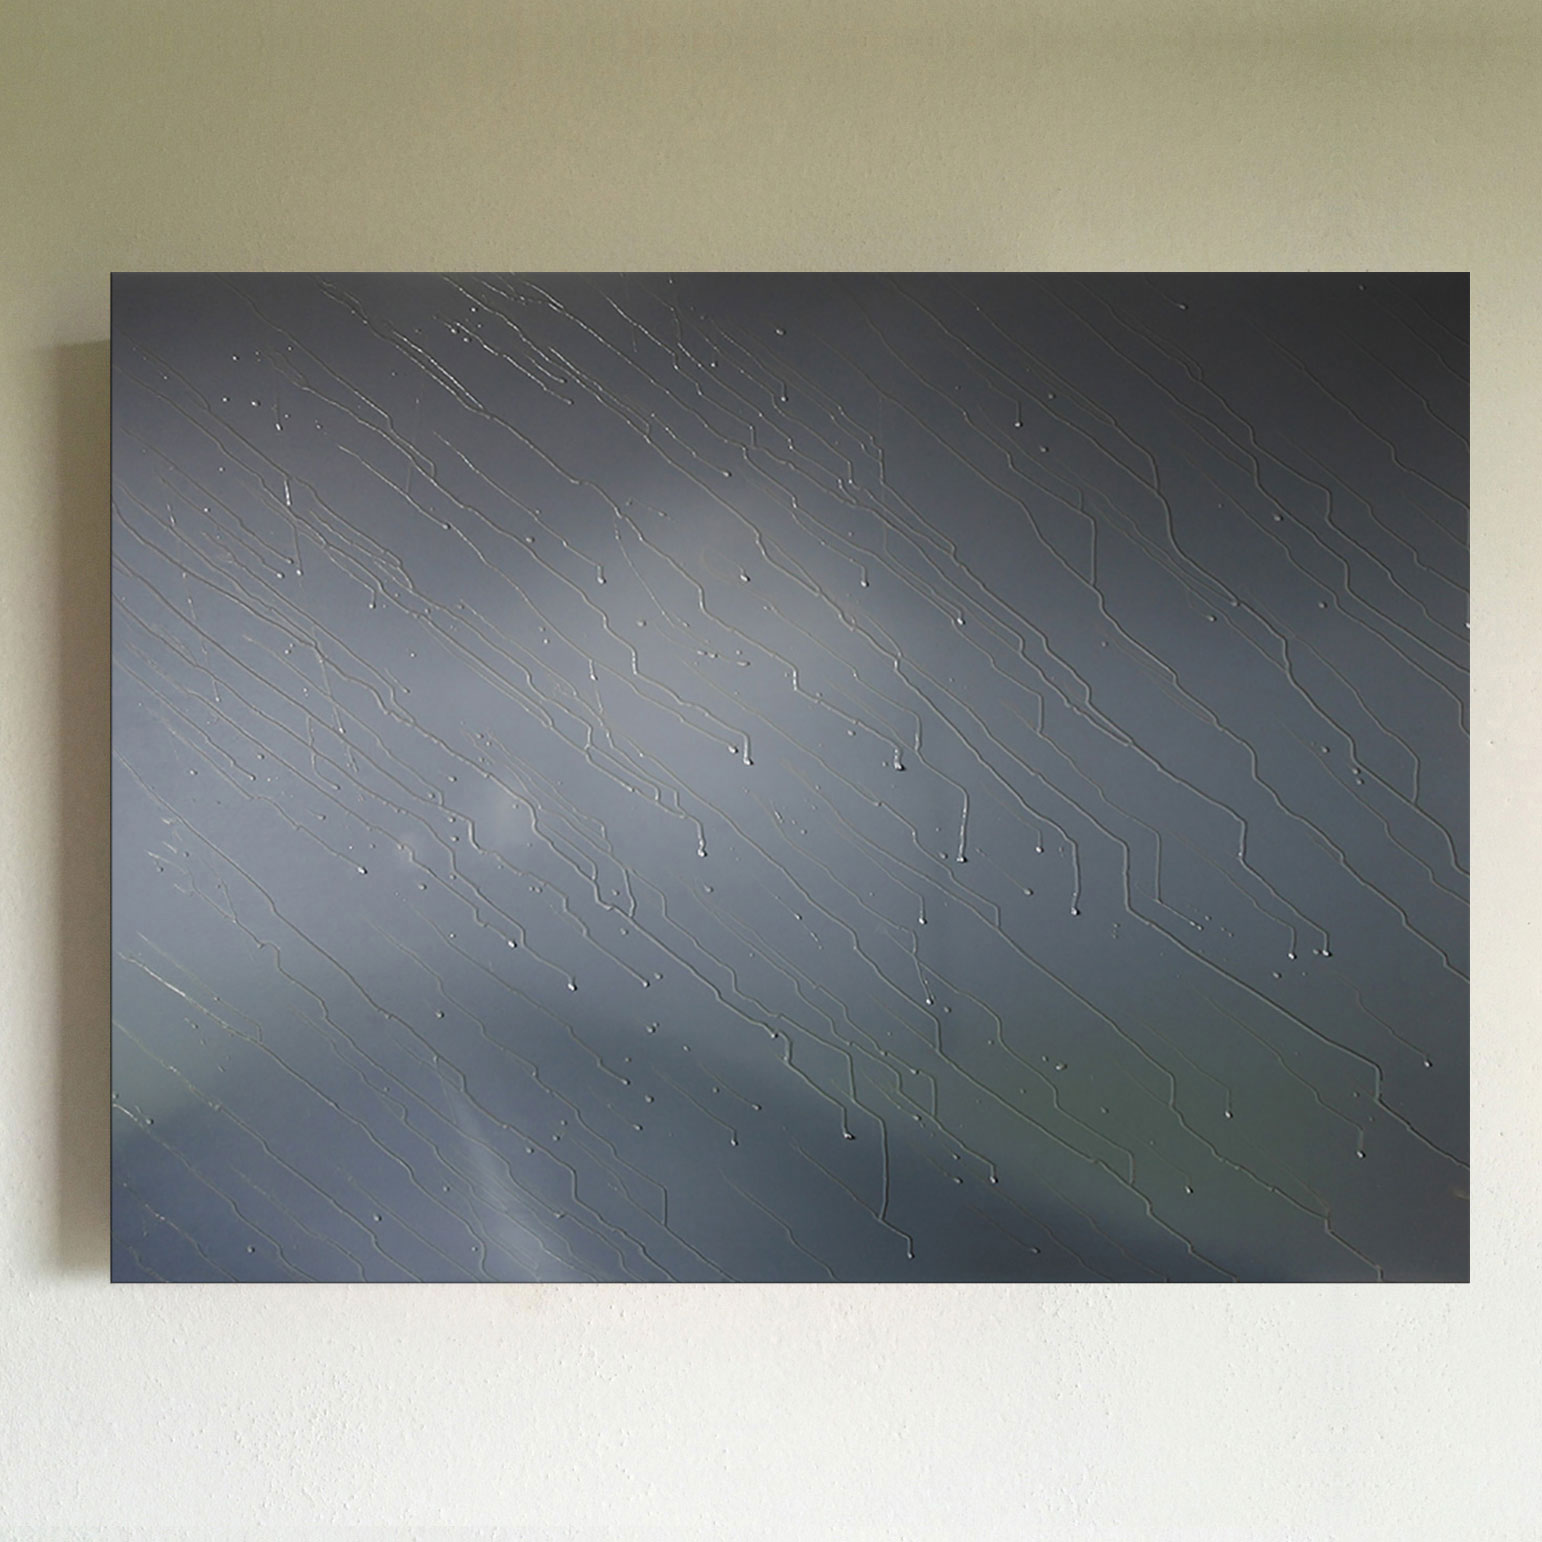 T#37-2009, mixed media on canvas, 70x100cm, priv. coll.